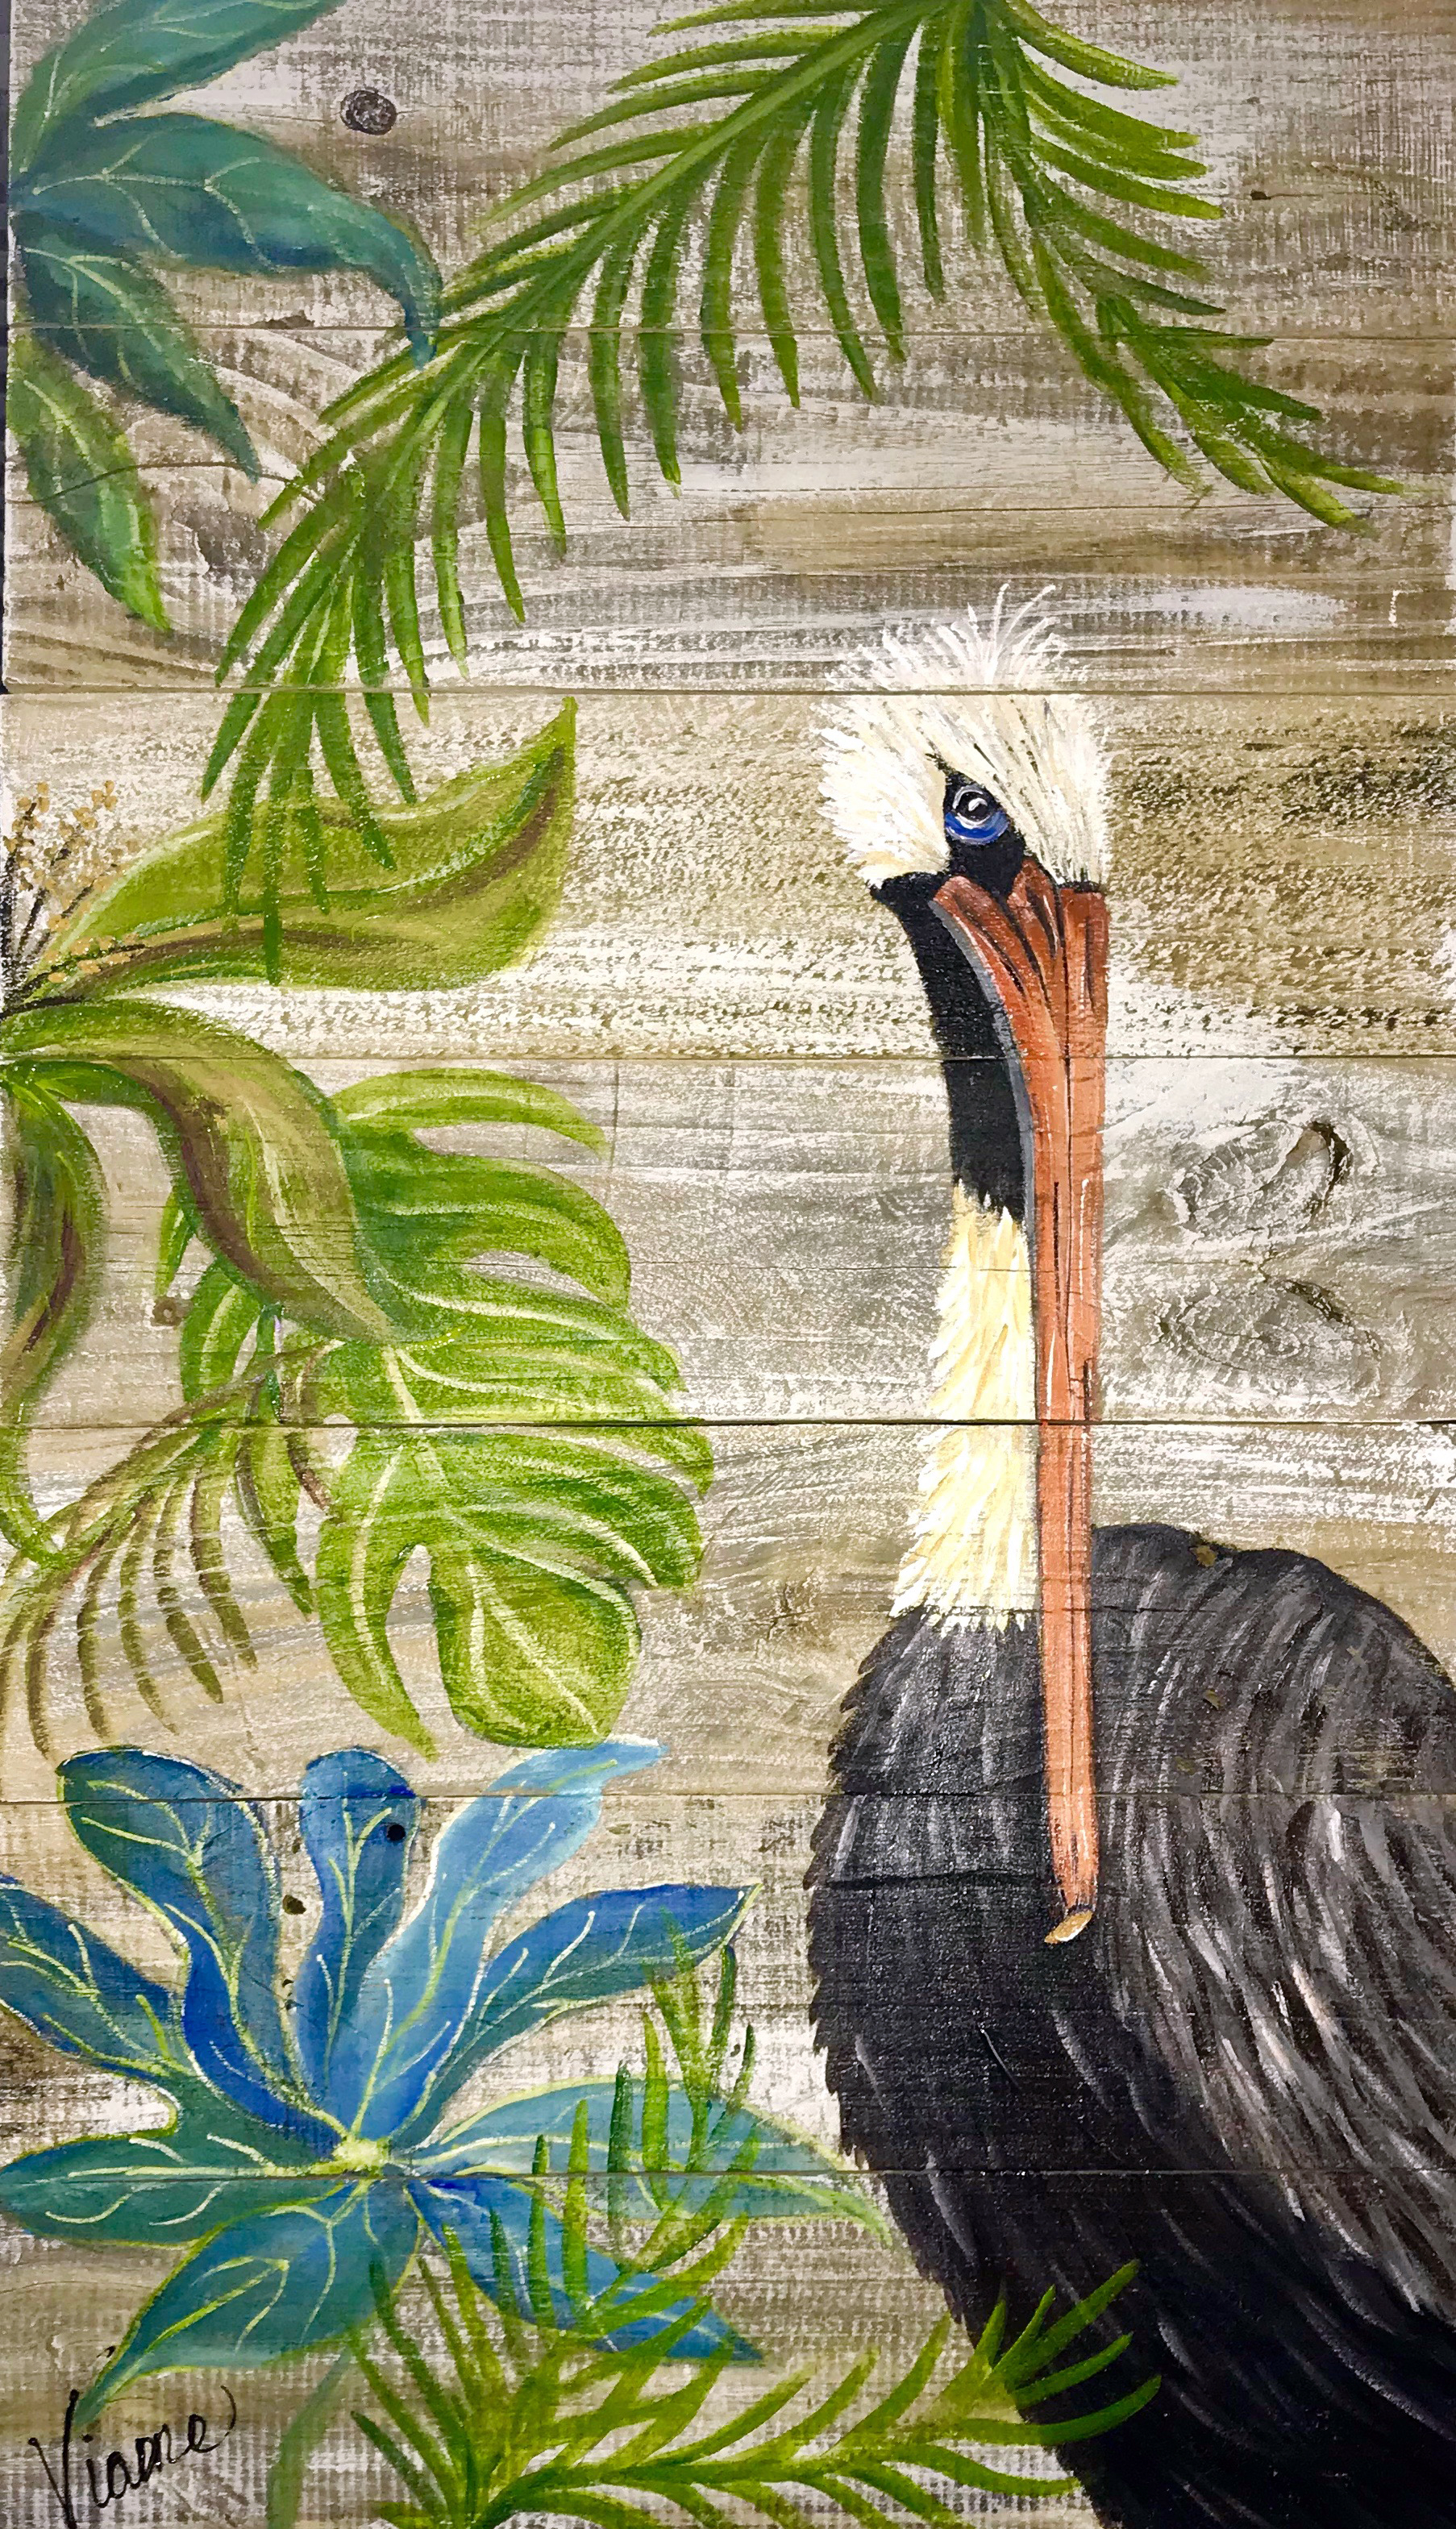 Pelican with Attitude - 201824x48 inchesacrylic on reclaimed fence board